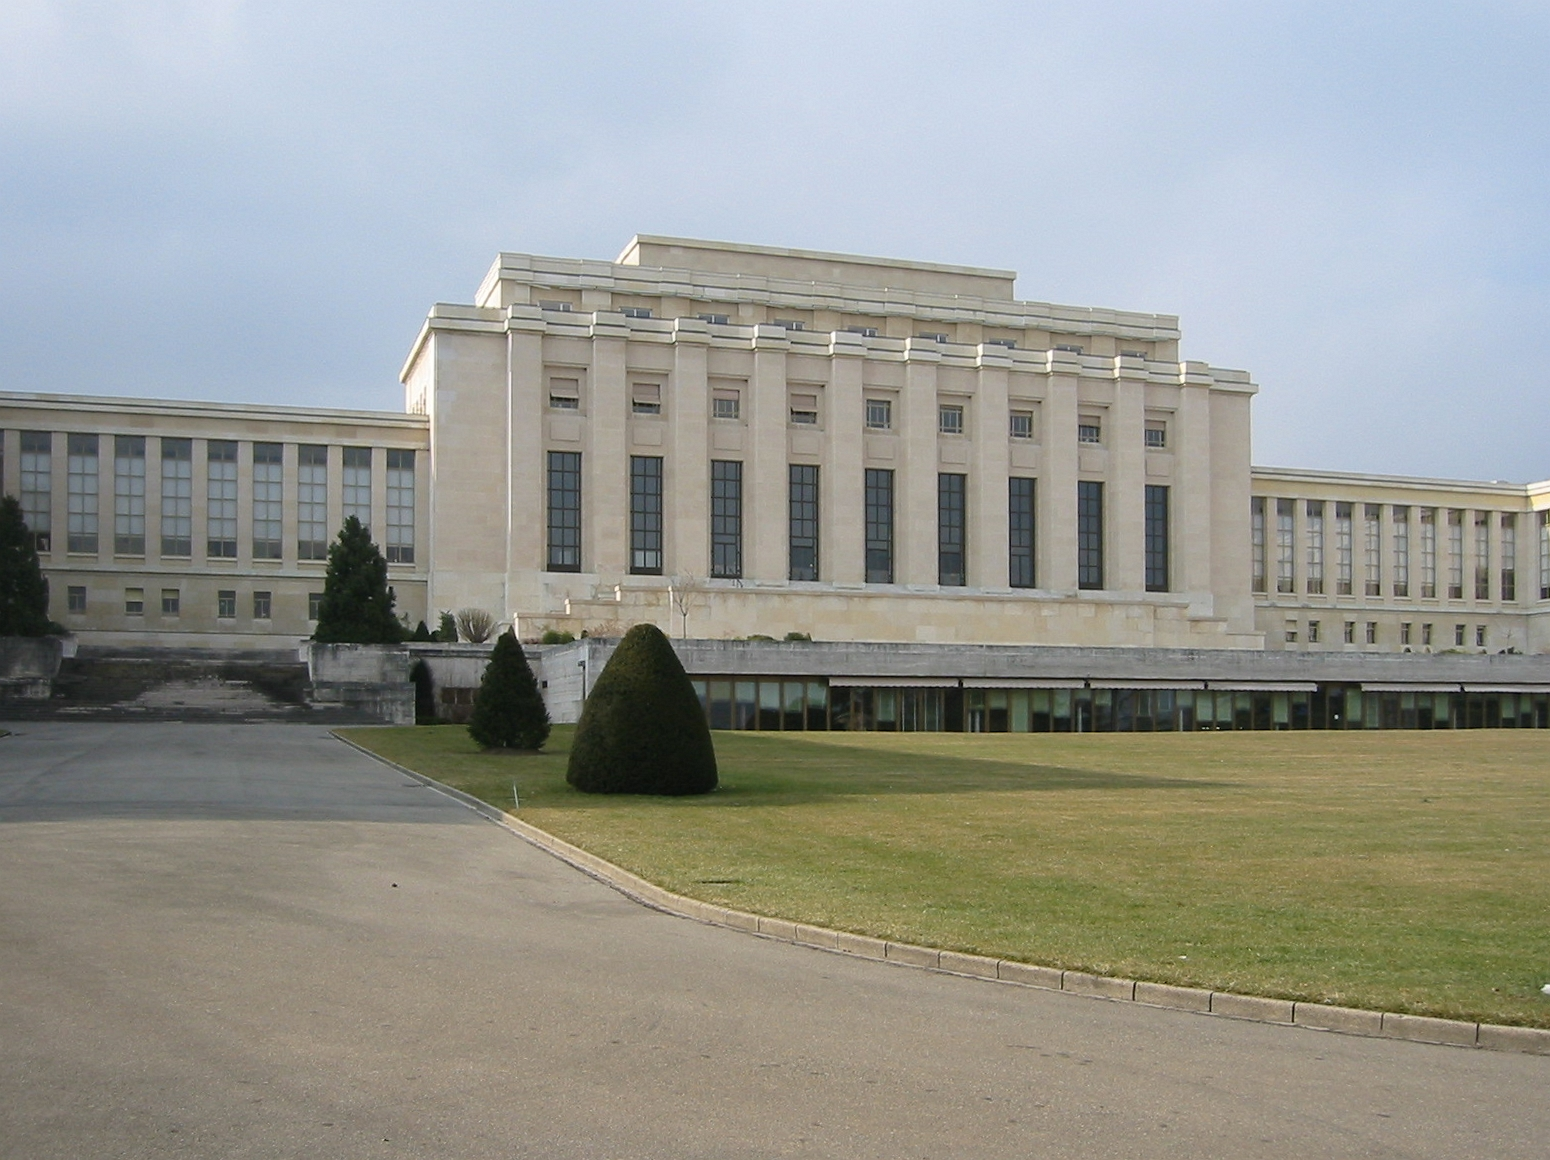 The Palace of Nations in Geneva